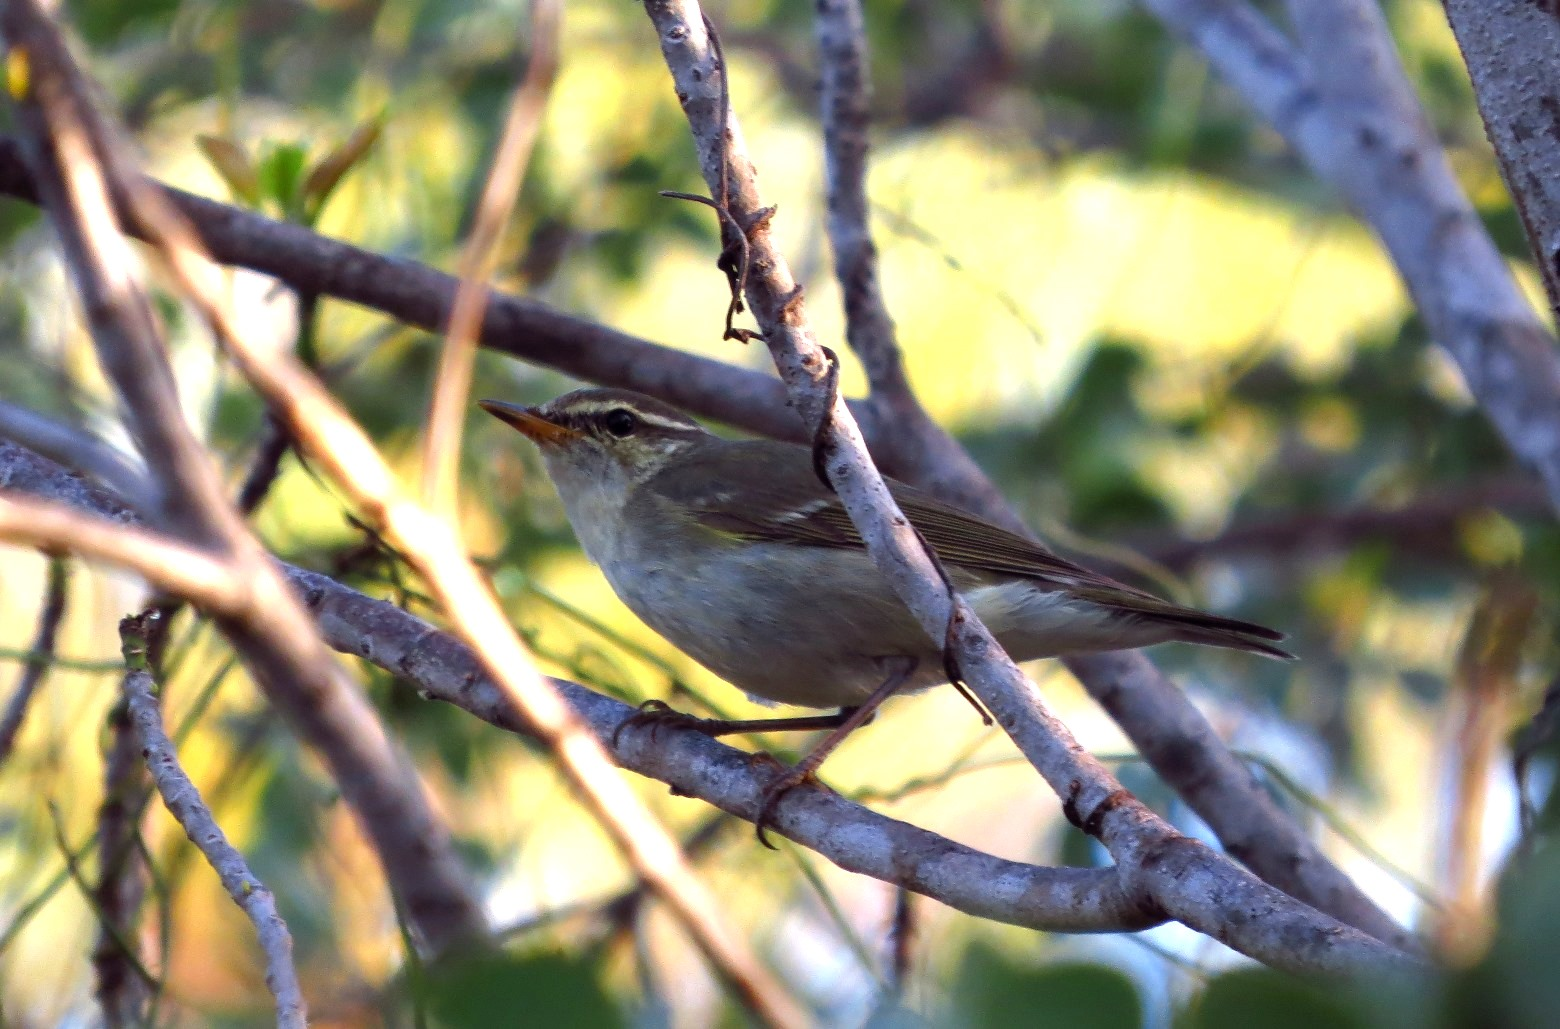 Chucky the Kamchatka Leaf Warbler. The first seen on the Australian mainland. Photo: John Graff